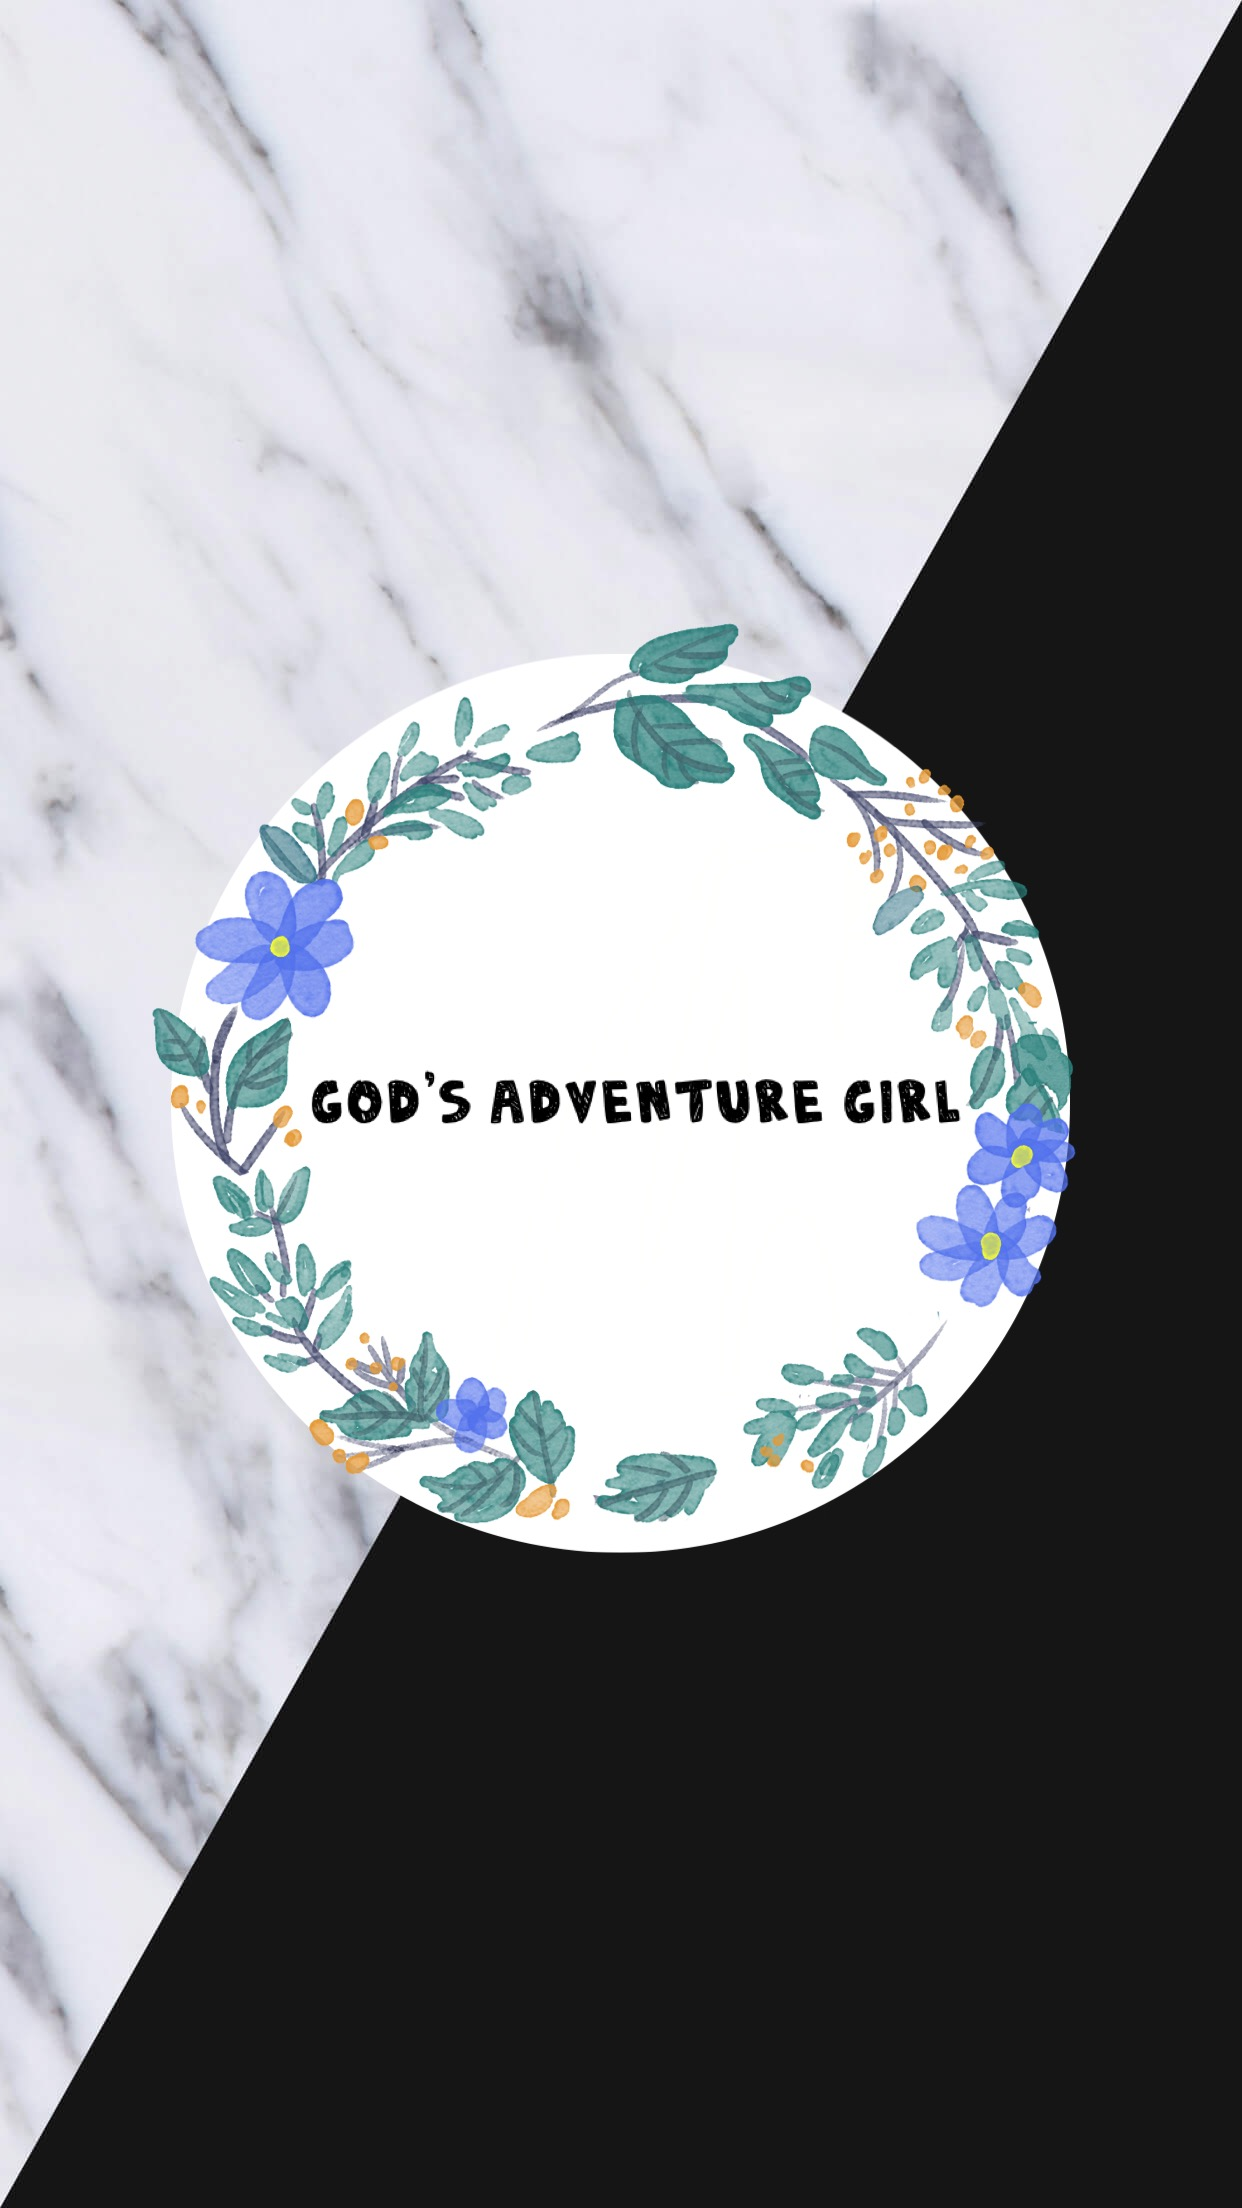 God's Adventure Girl